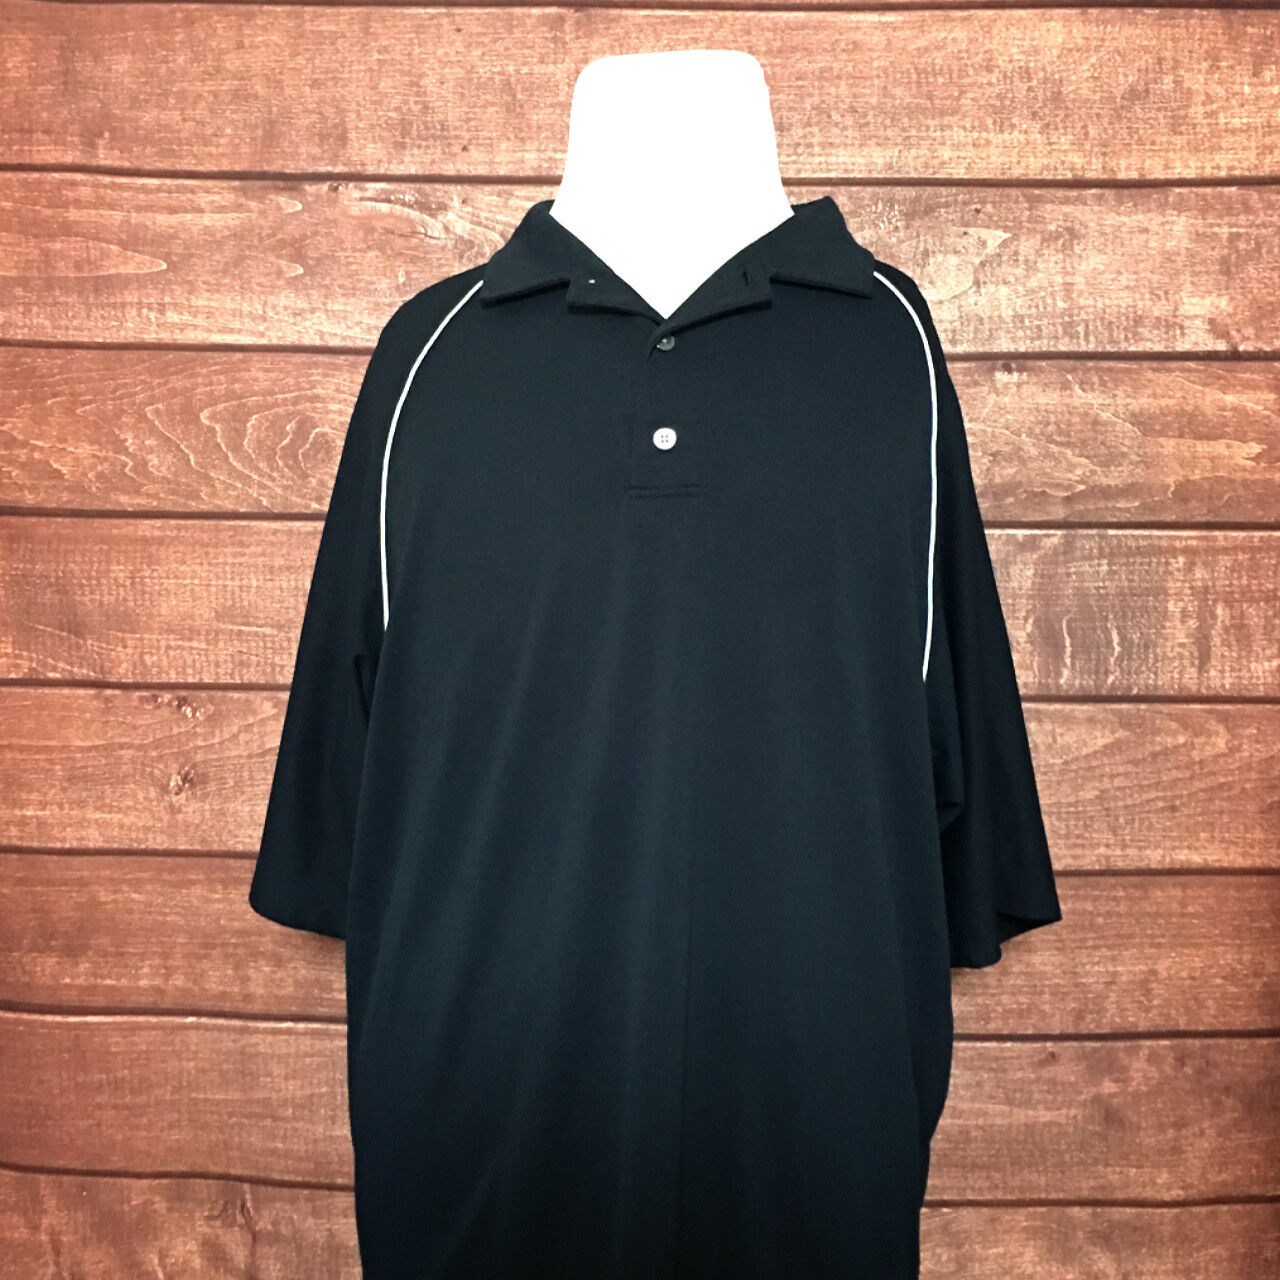 FootJoy Mens Short Sleeve Polo Shirt Navy bluee White Button Front Size Large